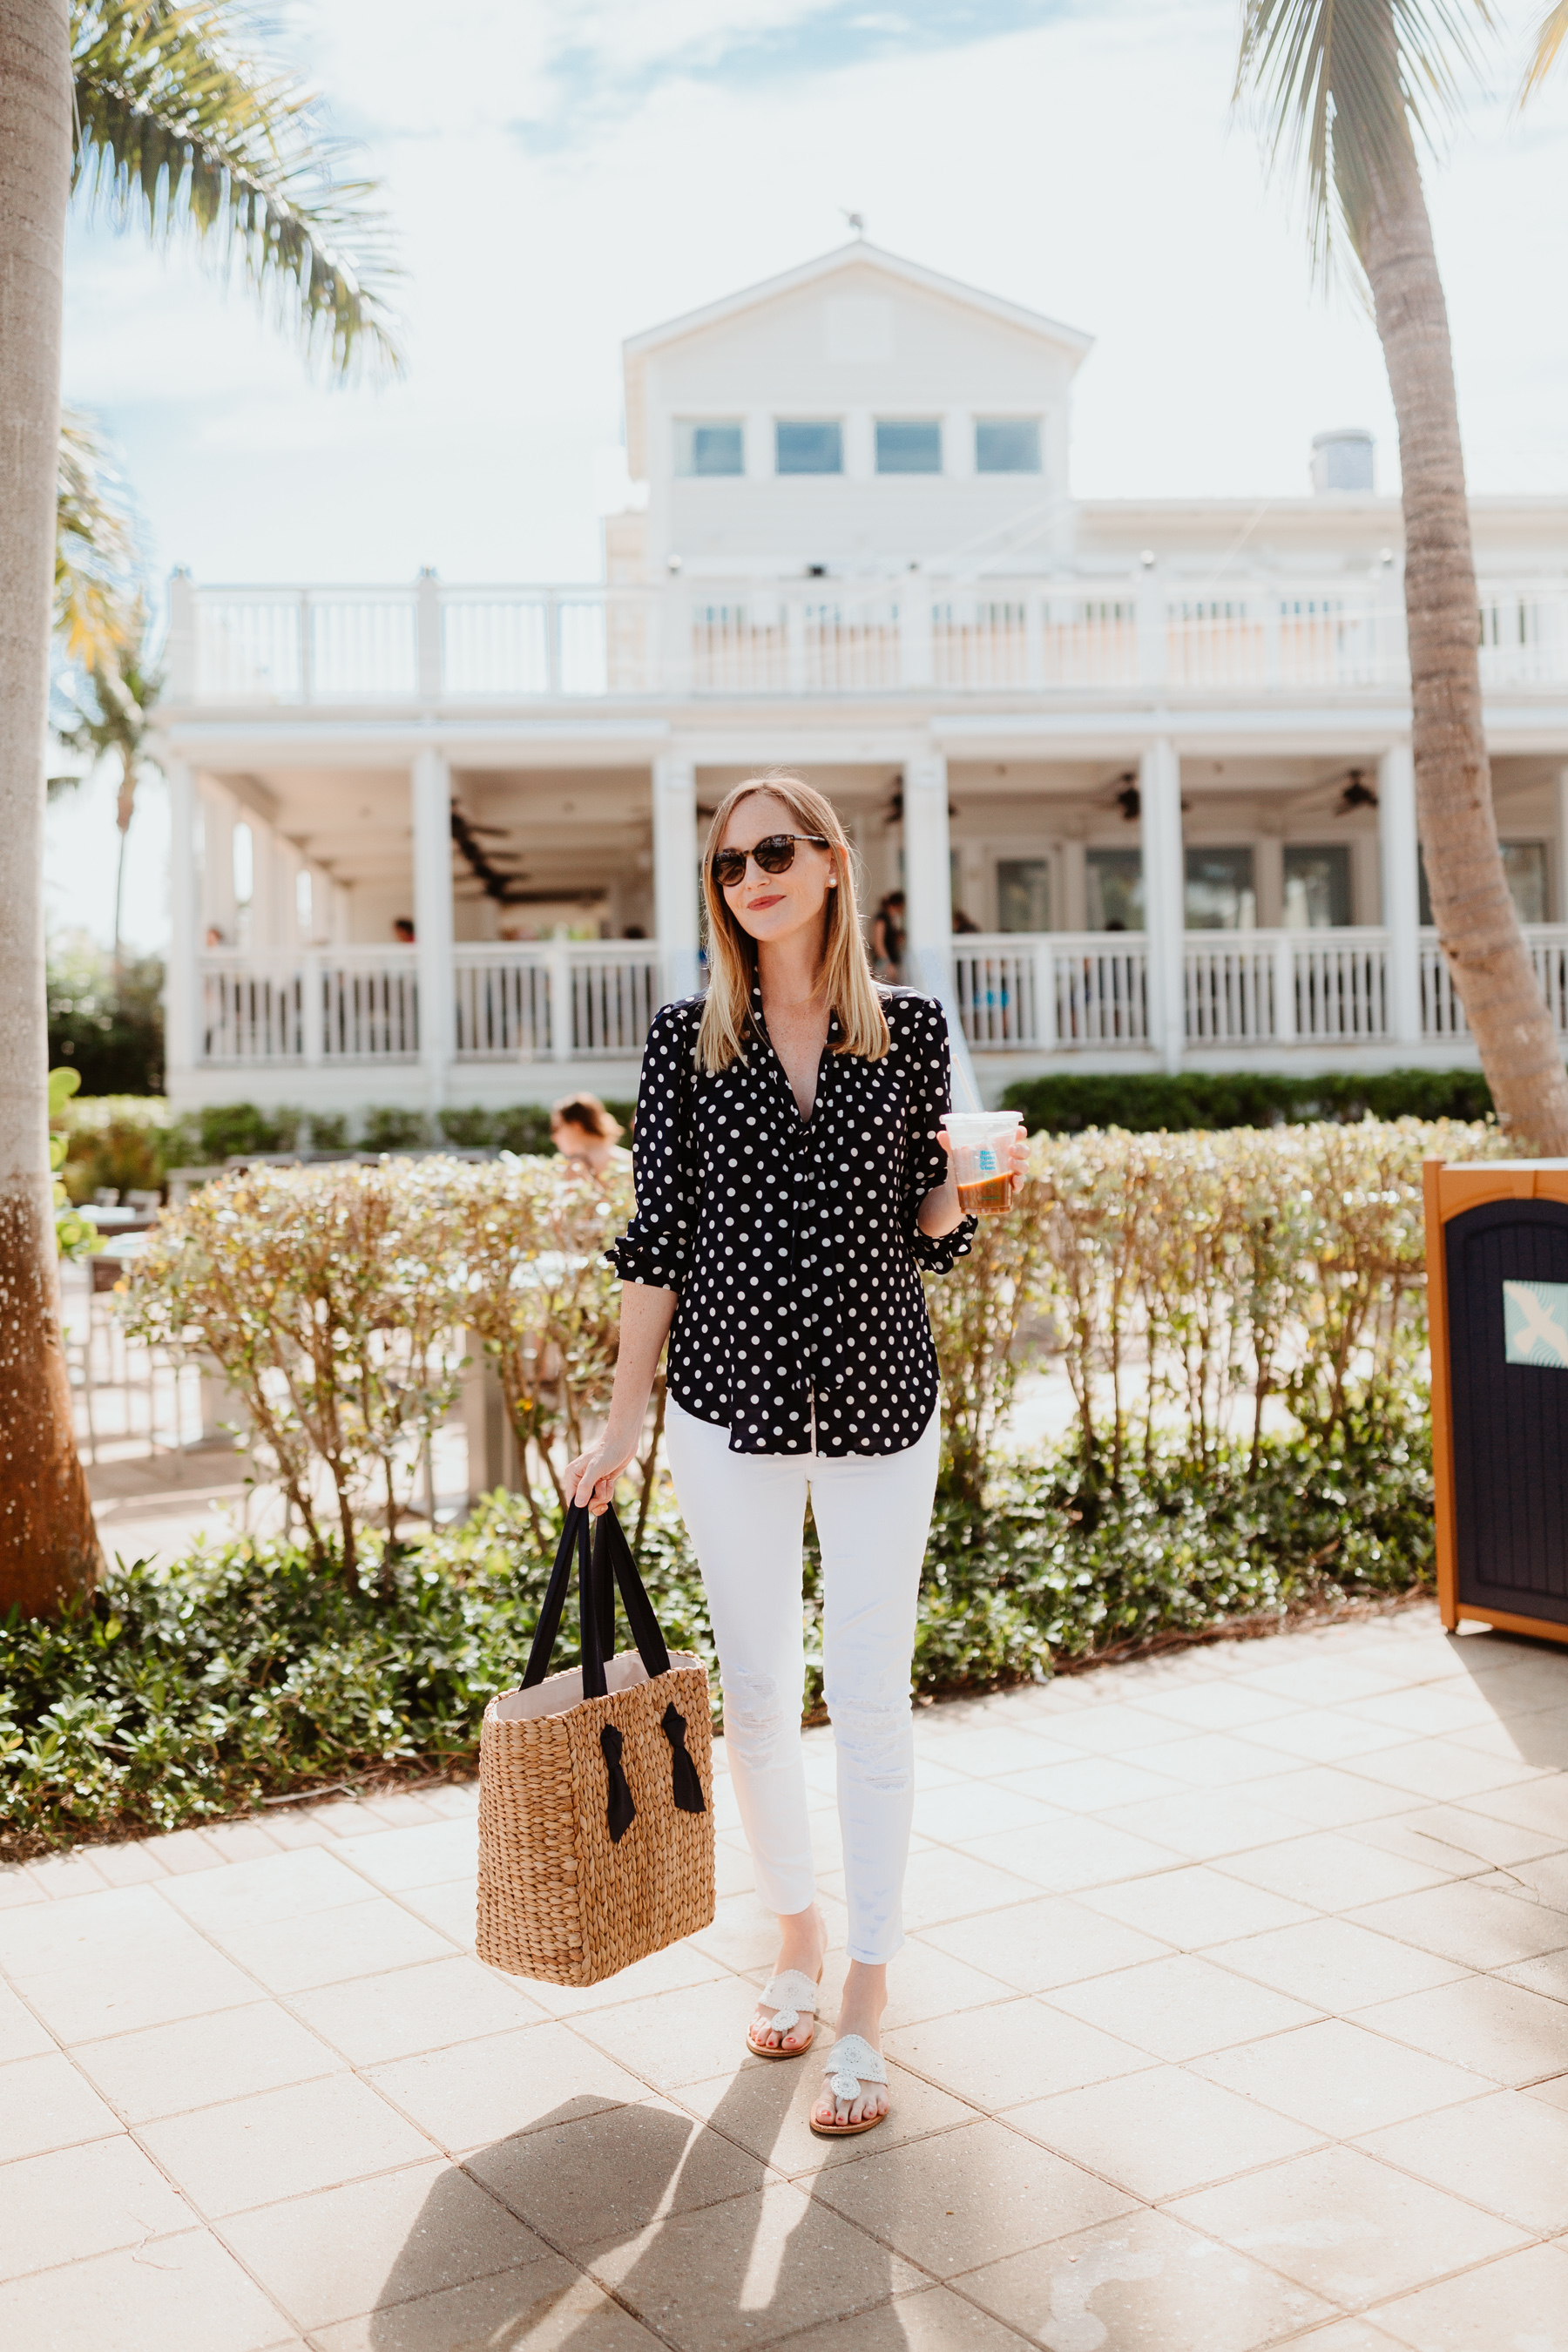 Kelly's Outfit: J.Crew Navy Polka Dot Top /Pamela Munson Woven Tote / Jack Rogers /J Brand Maternity Ankle Jeans